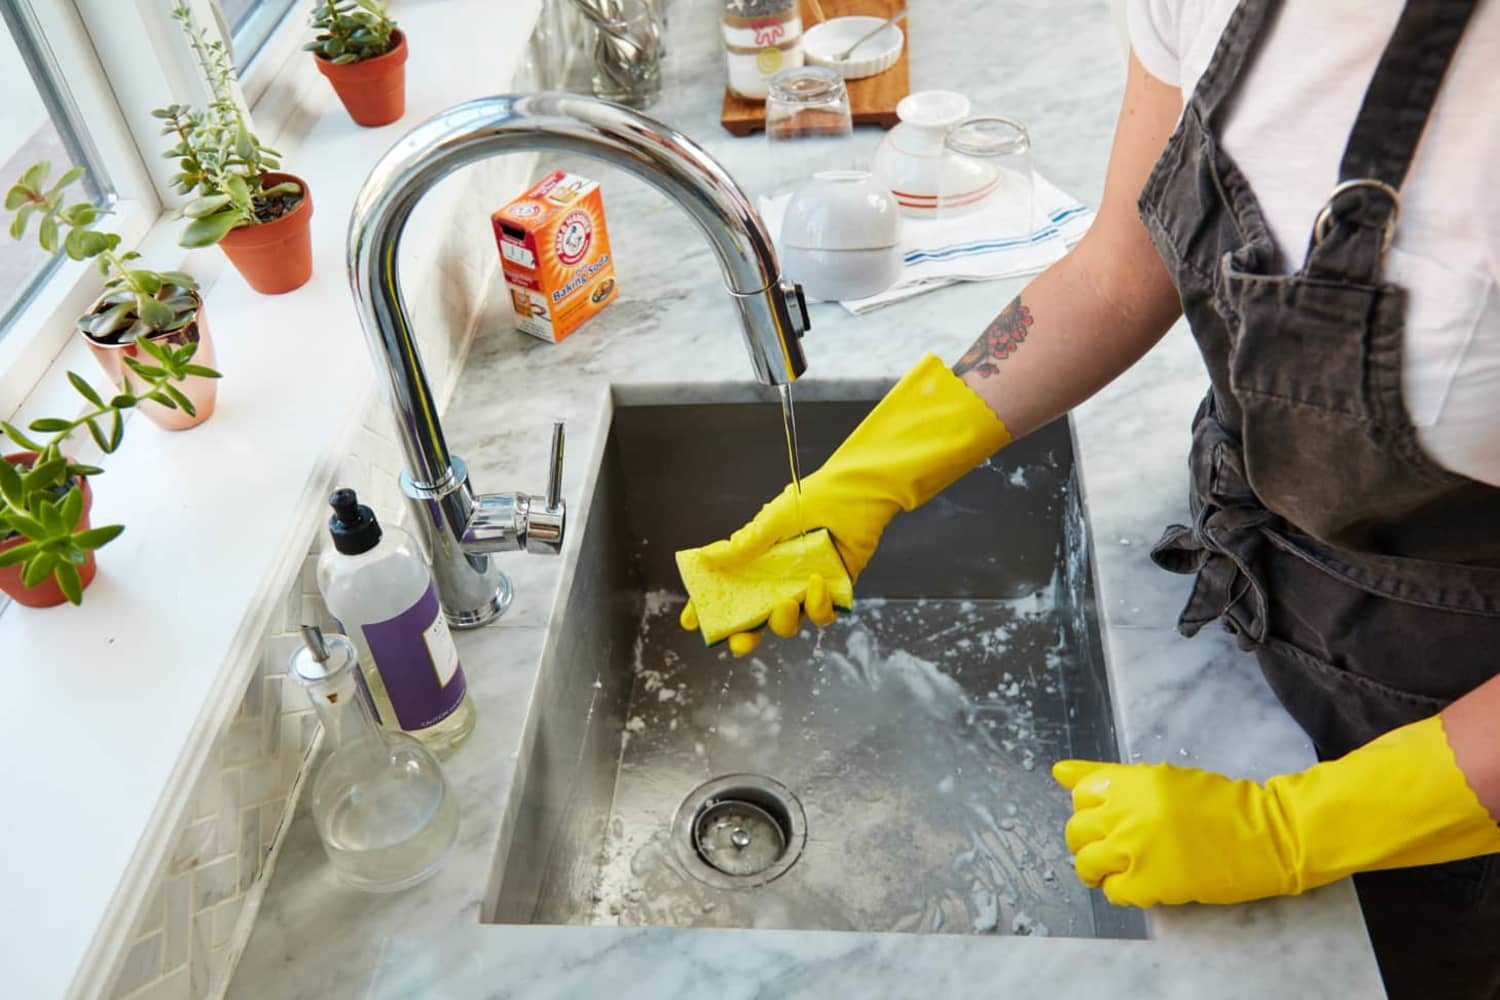 8 Tips That'll Make Dish Duty Much Faster and Easier